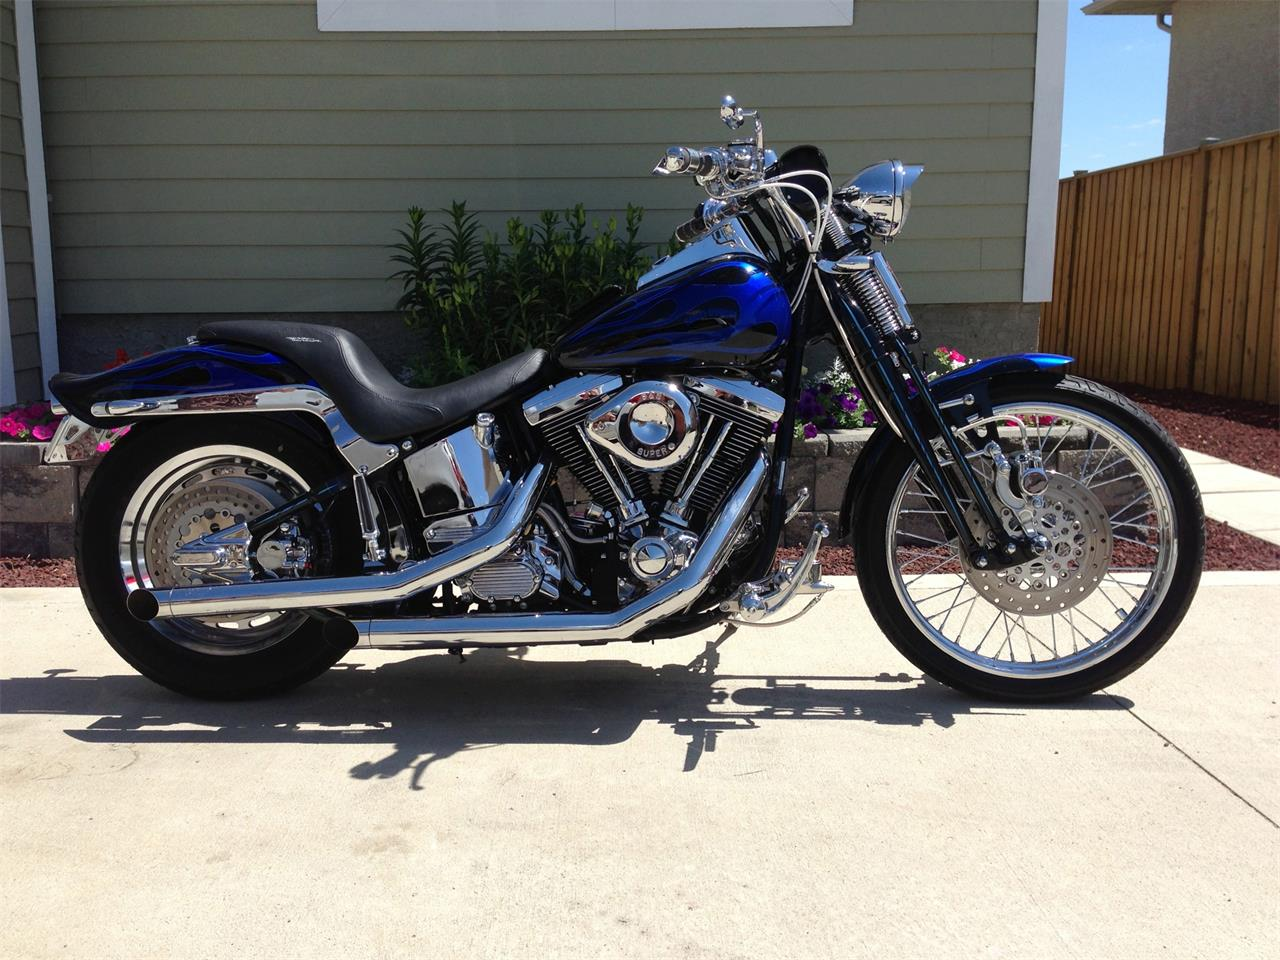 Large Picture of 1996 Motorcycle - $13,600.00 - QBI5